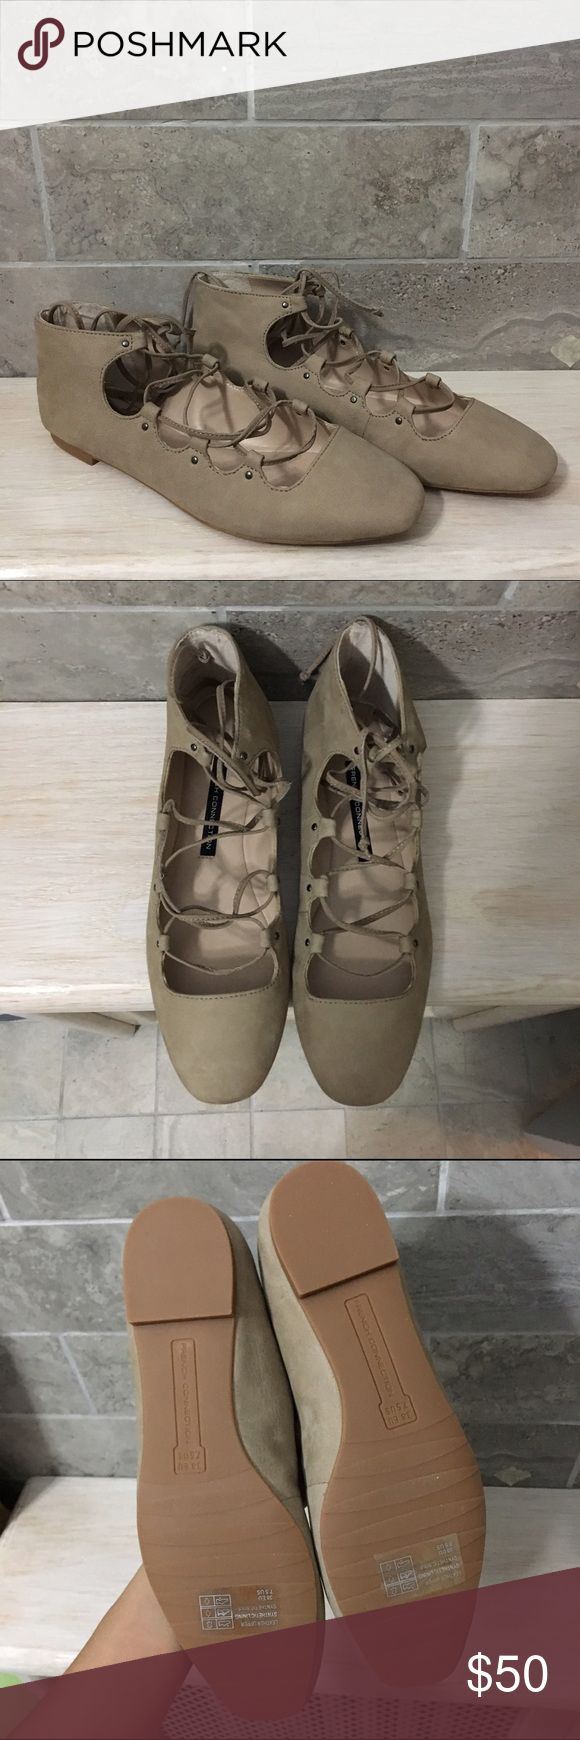 FRENCH CONNECTION Lace-Up Ballet Flats 7.5 Brand new with original box. French Connection Shoes Flats & Loafers